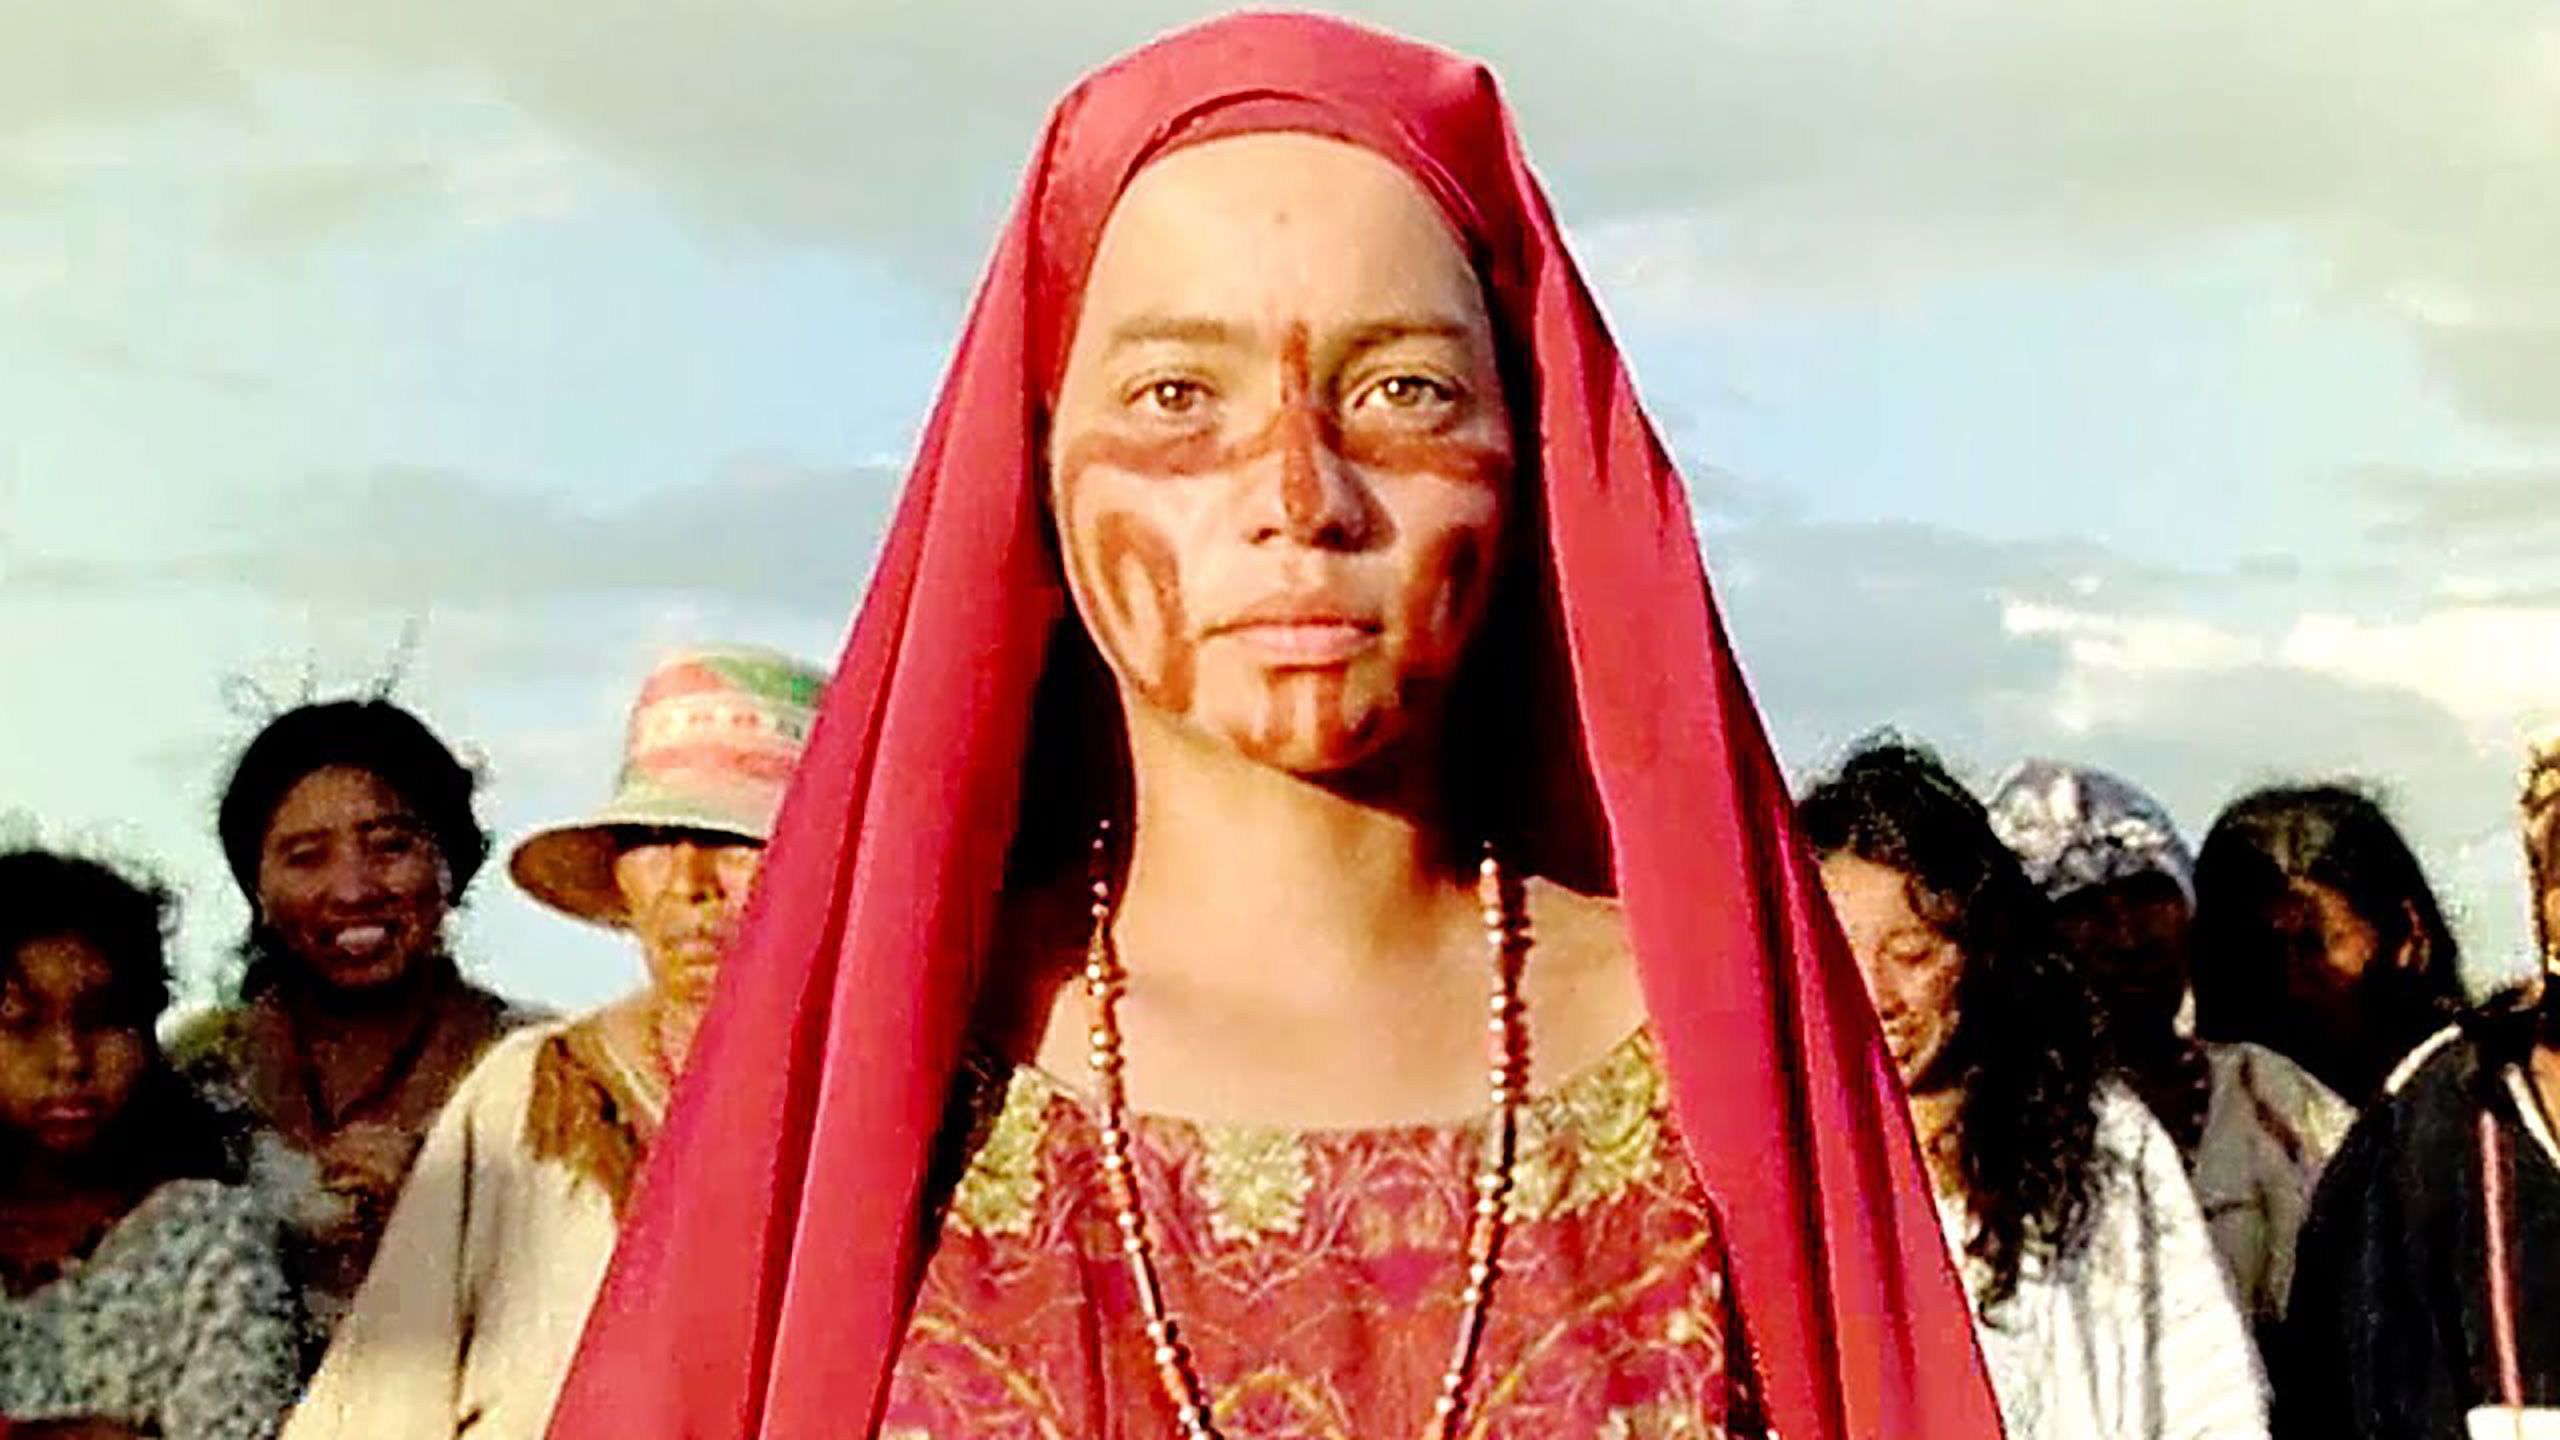 Zaida, a young women from Wayuu tribe dressed in red with a tribal design painted on her face in brown.